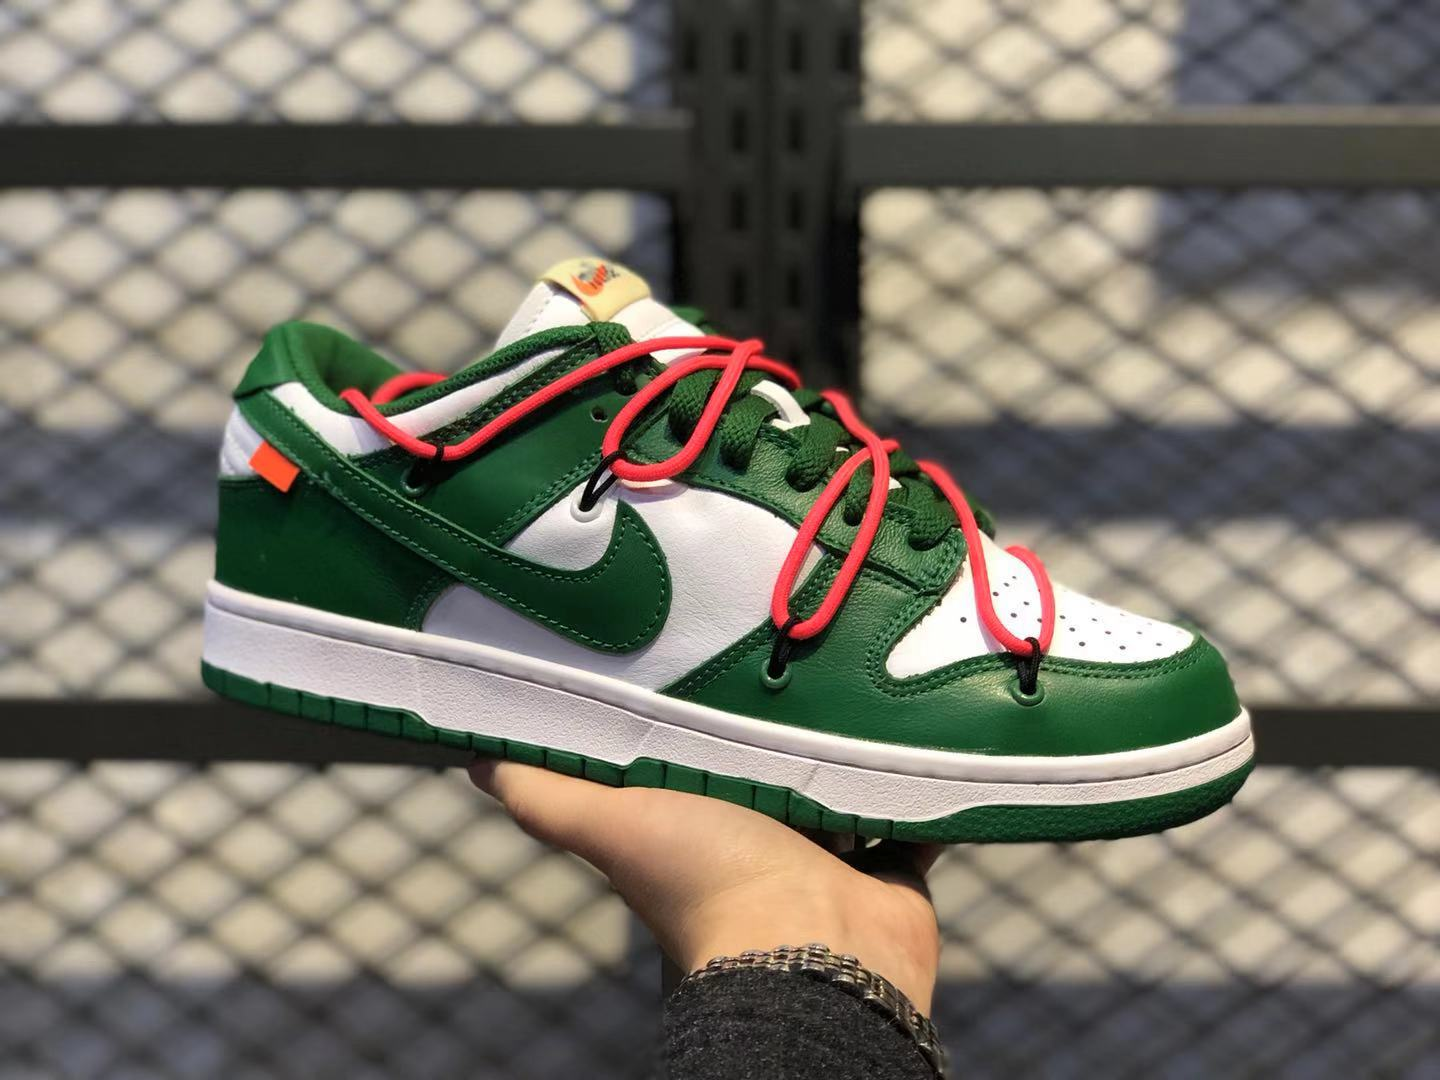 Off-White x Nike SB Dunk Low Pine Green/White CT0856-600 For Online Sale